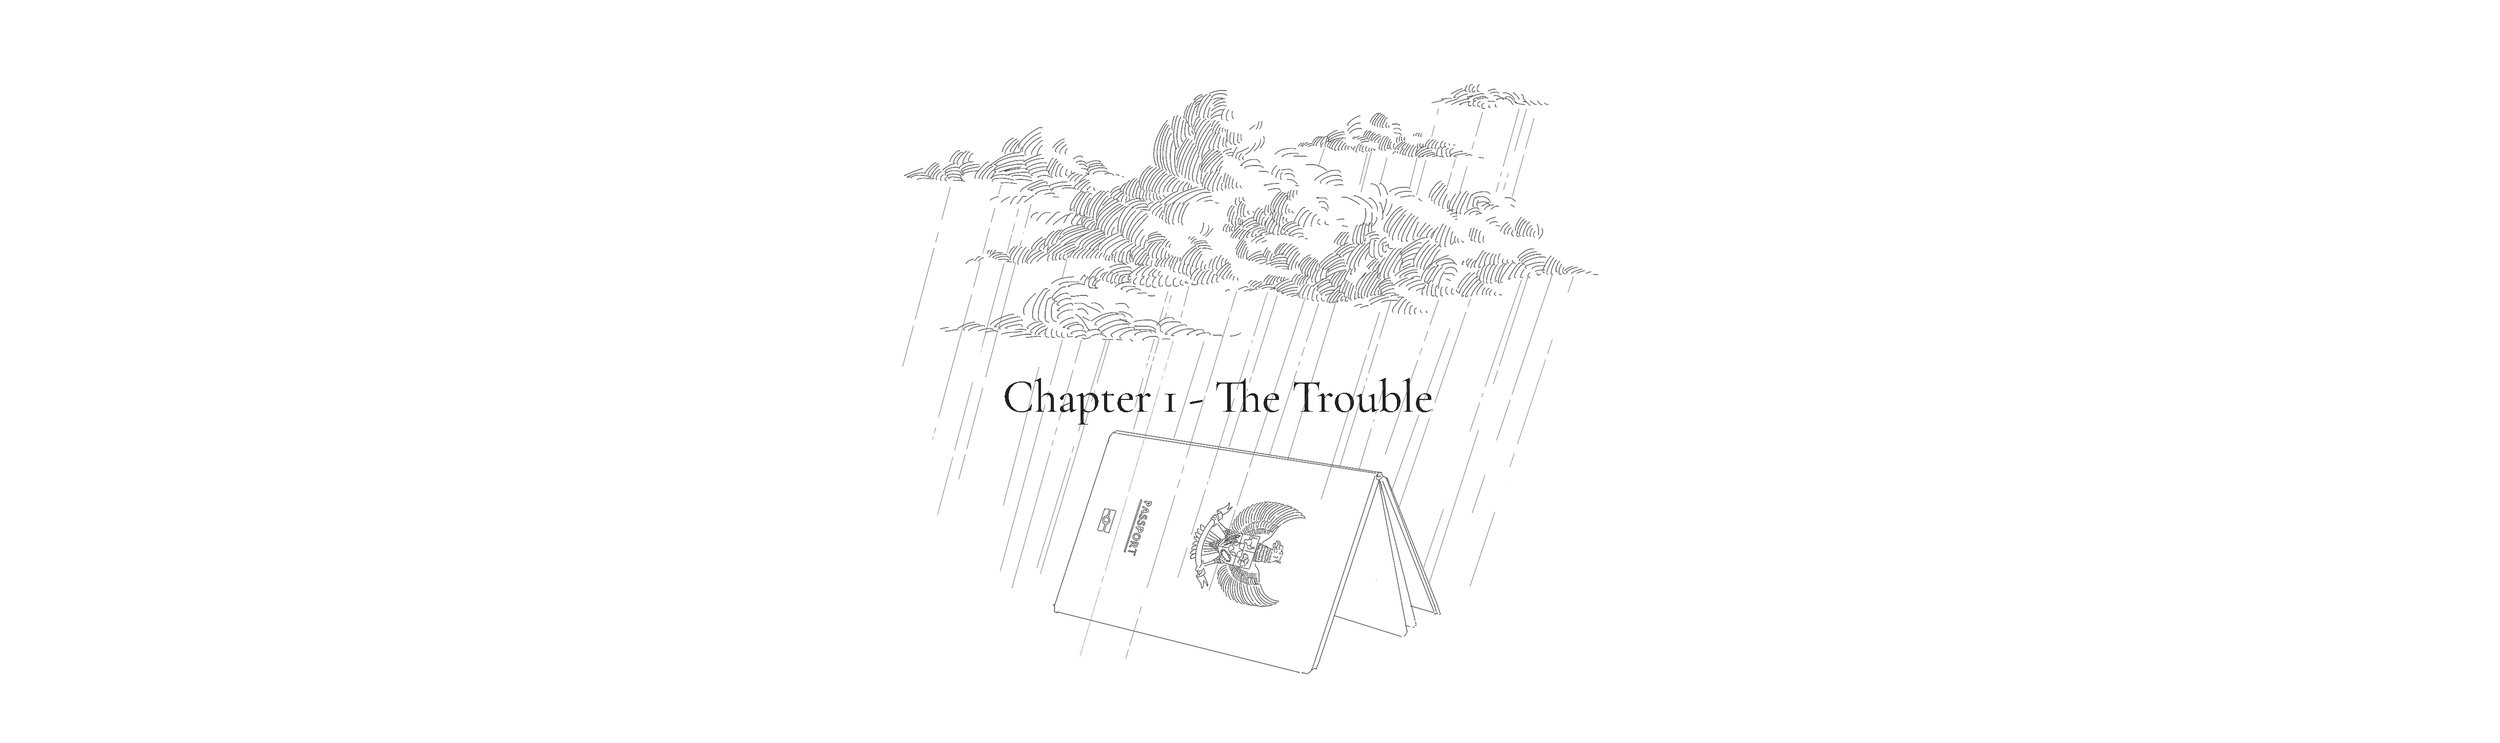 chapter 1 website.jpg